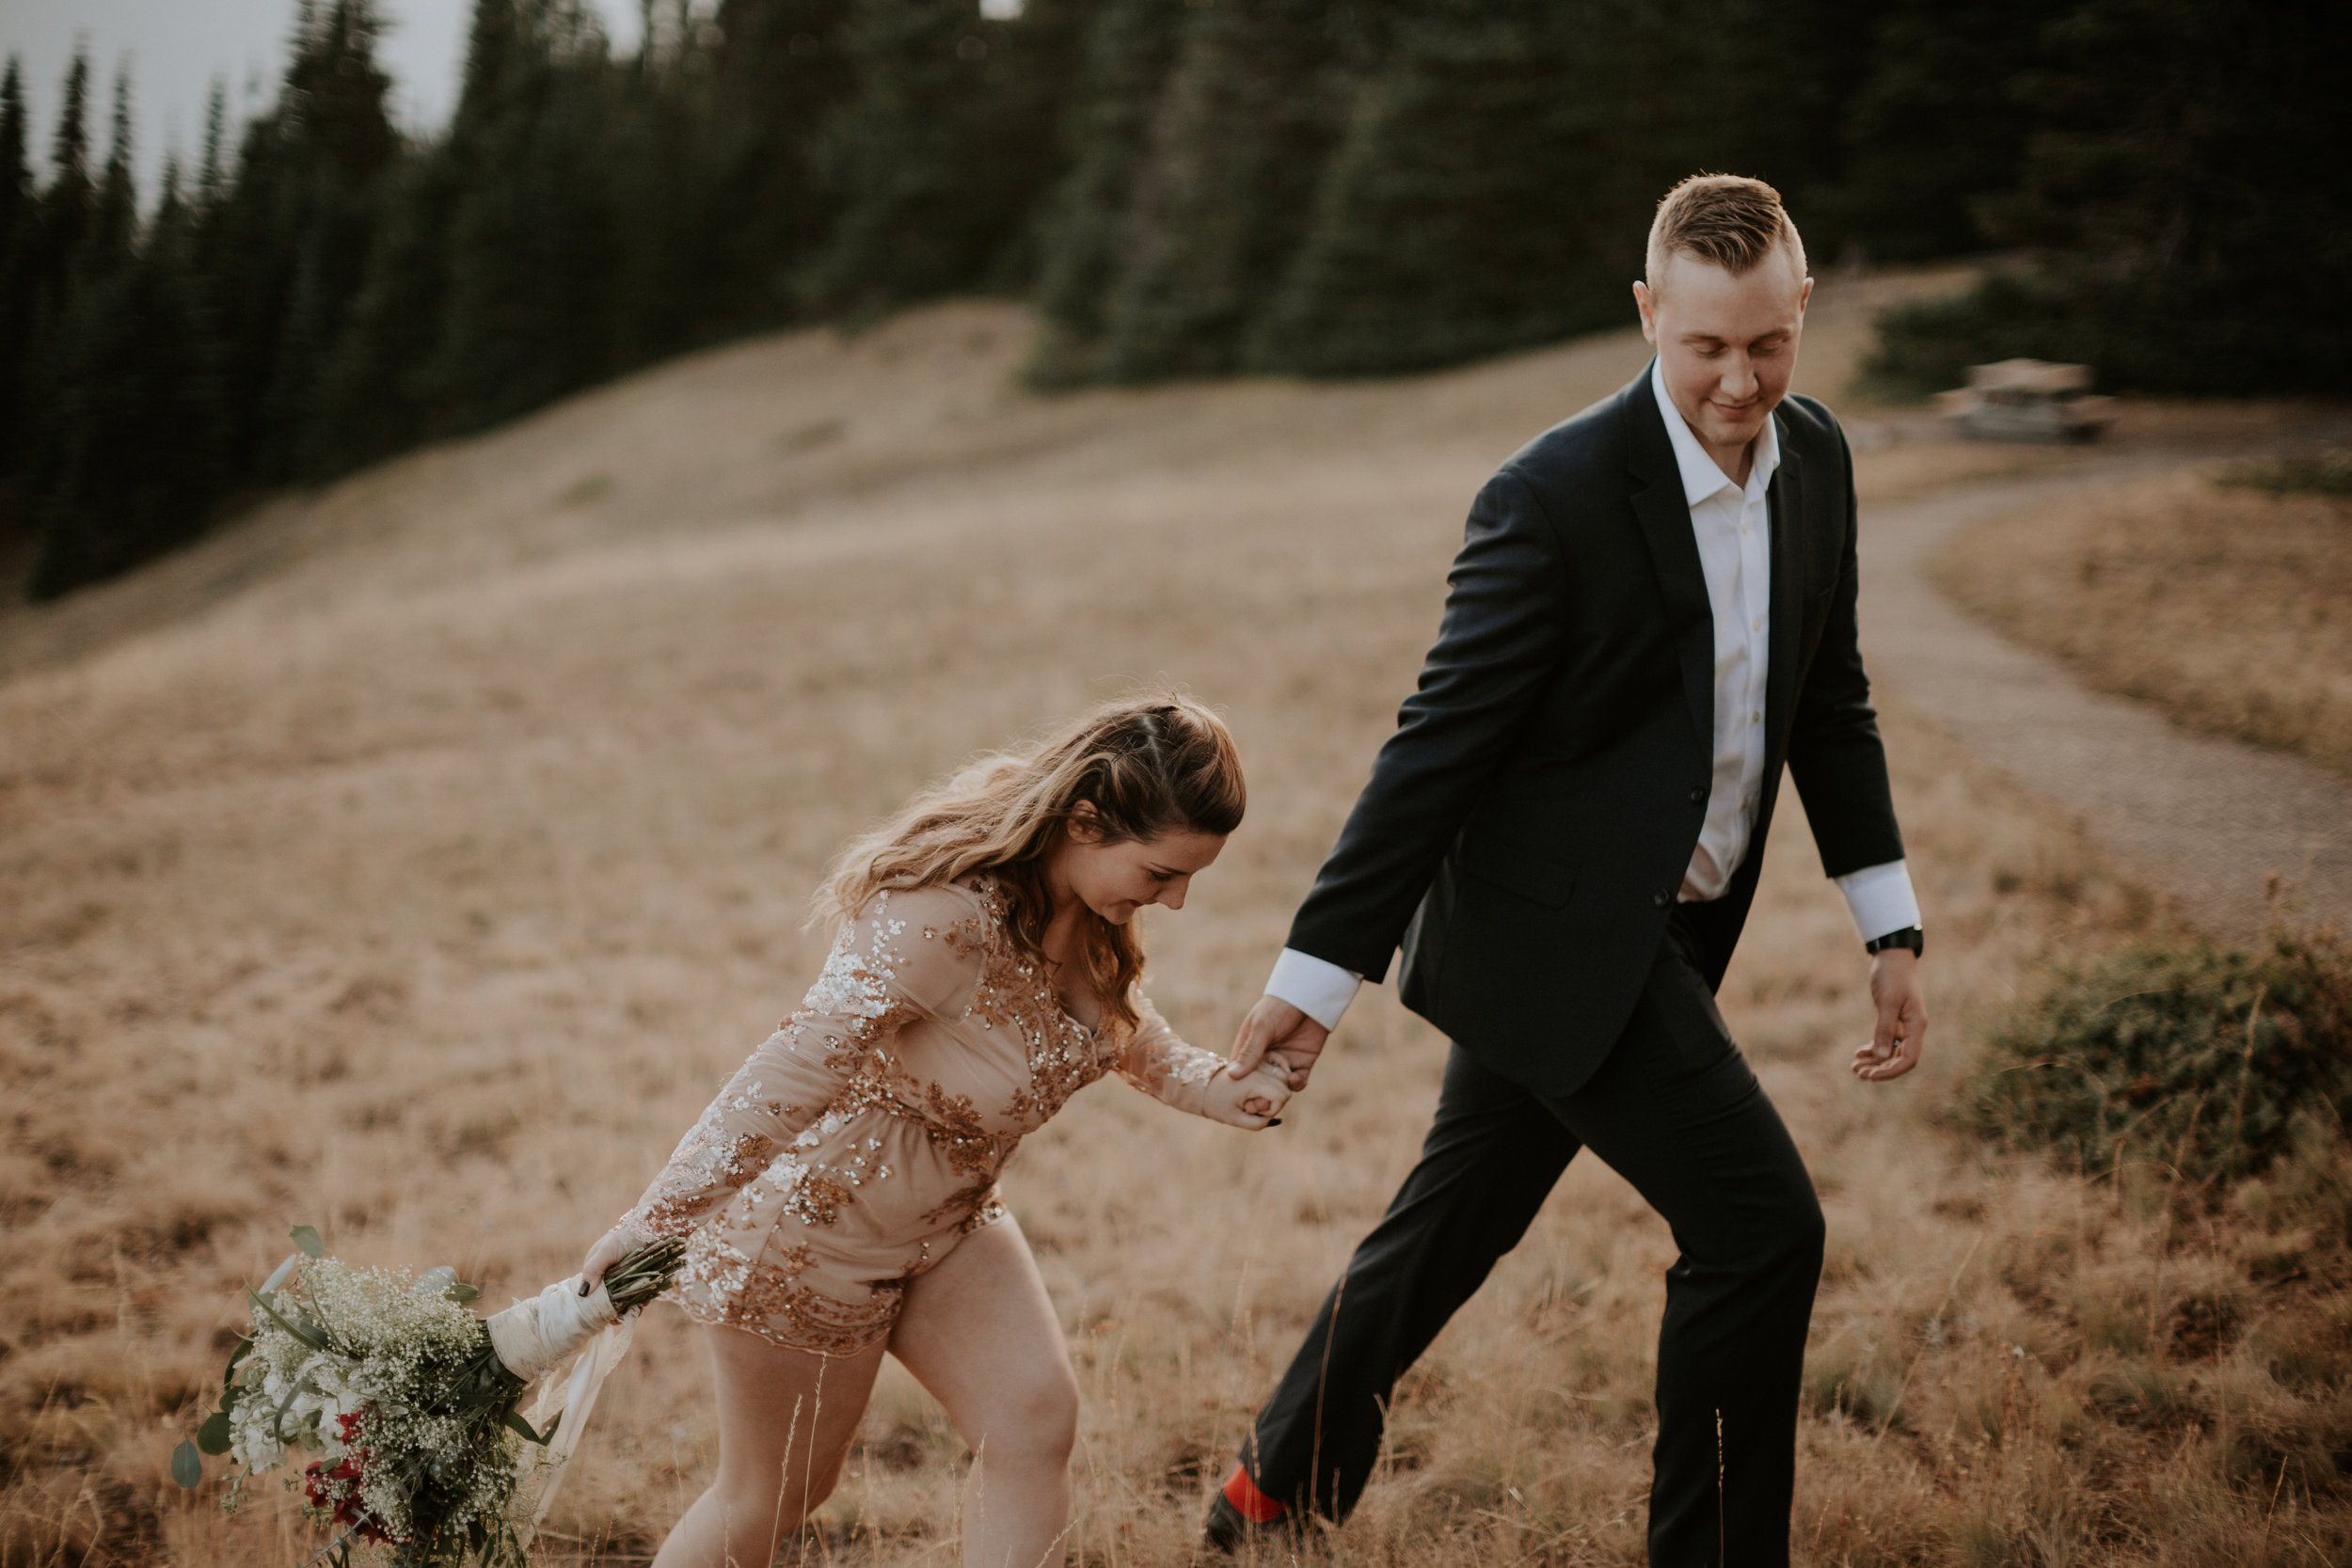 PNW-Hurricane-Ridge-Port-Angeles-Washington-elopement-photographer-kayla-dawn-photography-kayladawnphoto-wedding-anniversary-photoshoot-olympic-peninsula-289.jpg